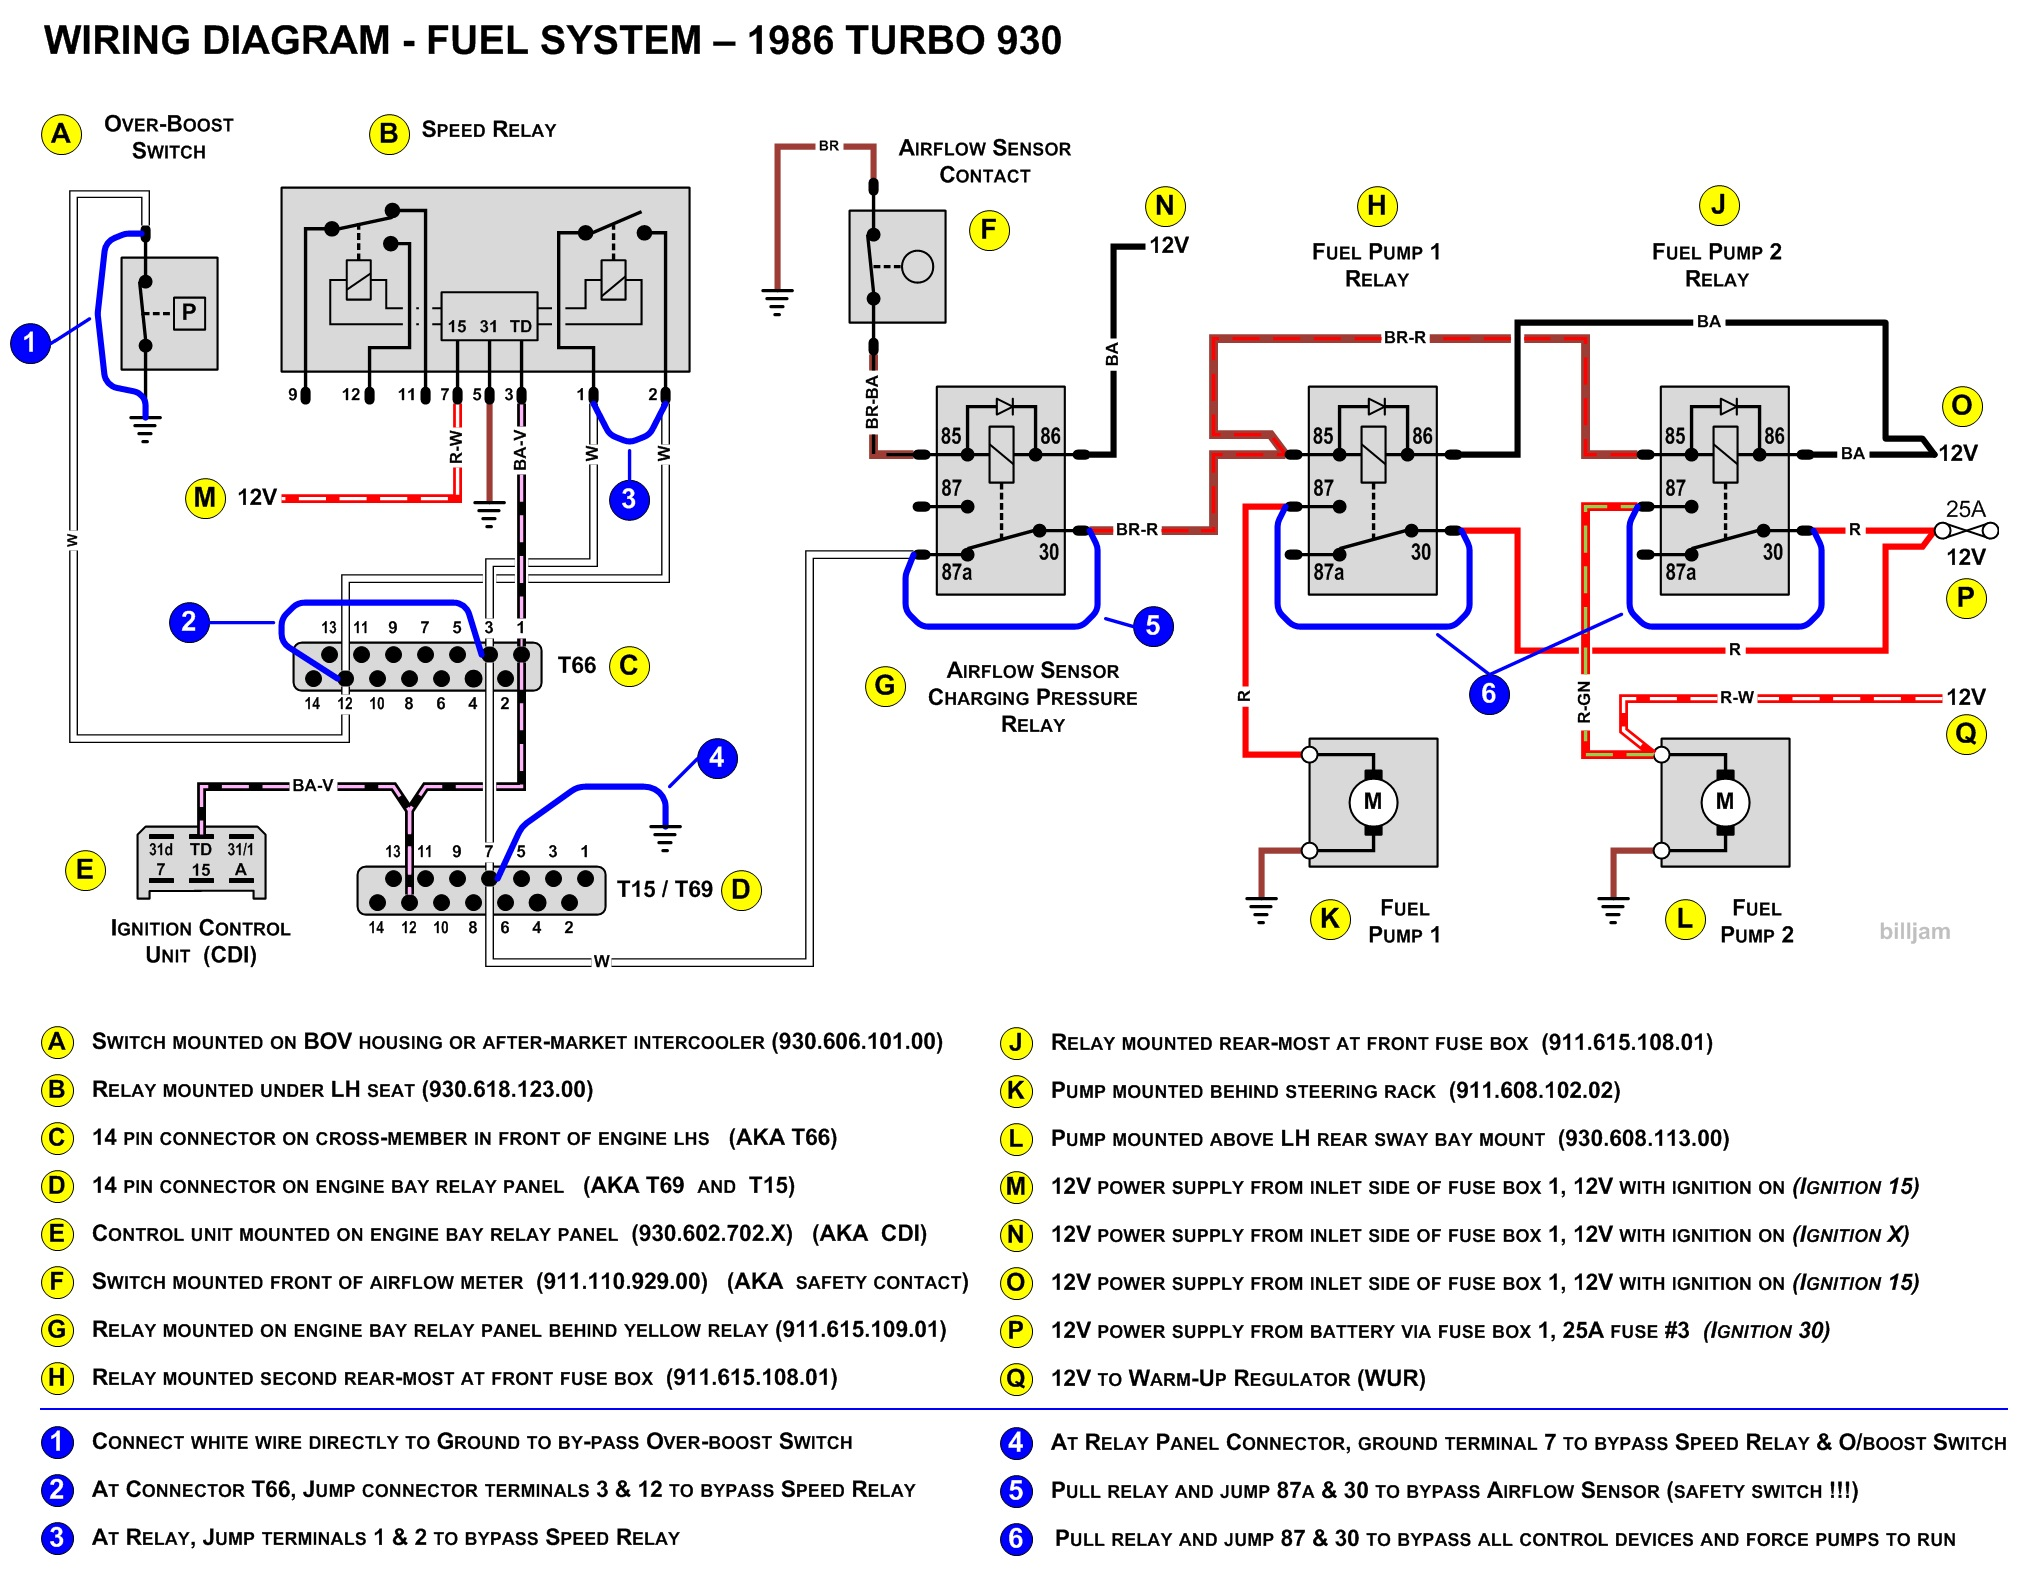 86 porsche 930 fuel system wiring diagram jumpers made a fuse box label for my 88 page 3 pelican parts technical bbs 1967 porsche 911 wiring diagram at readyjetset.co